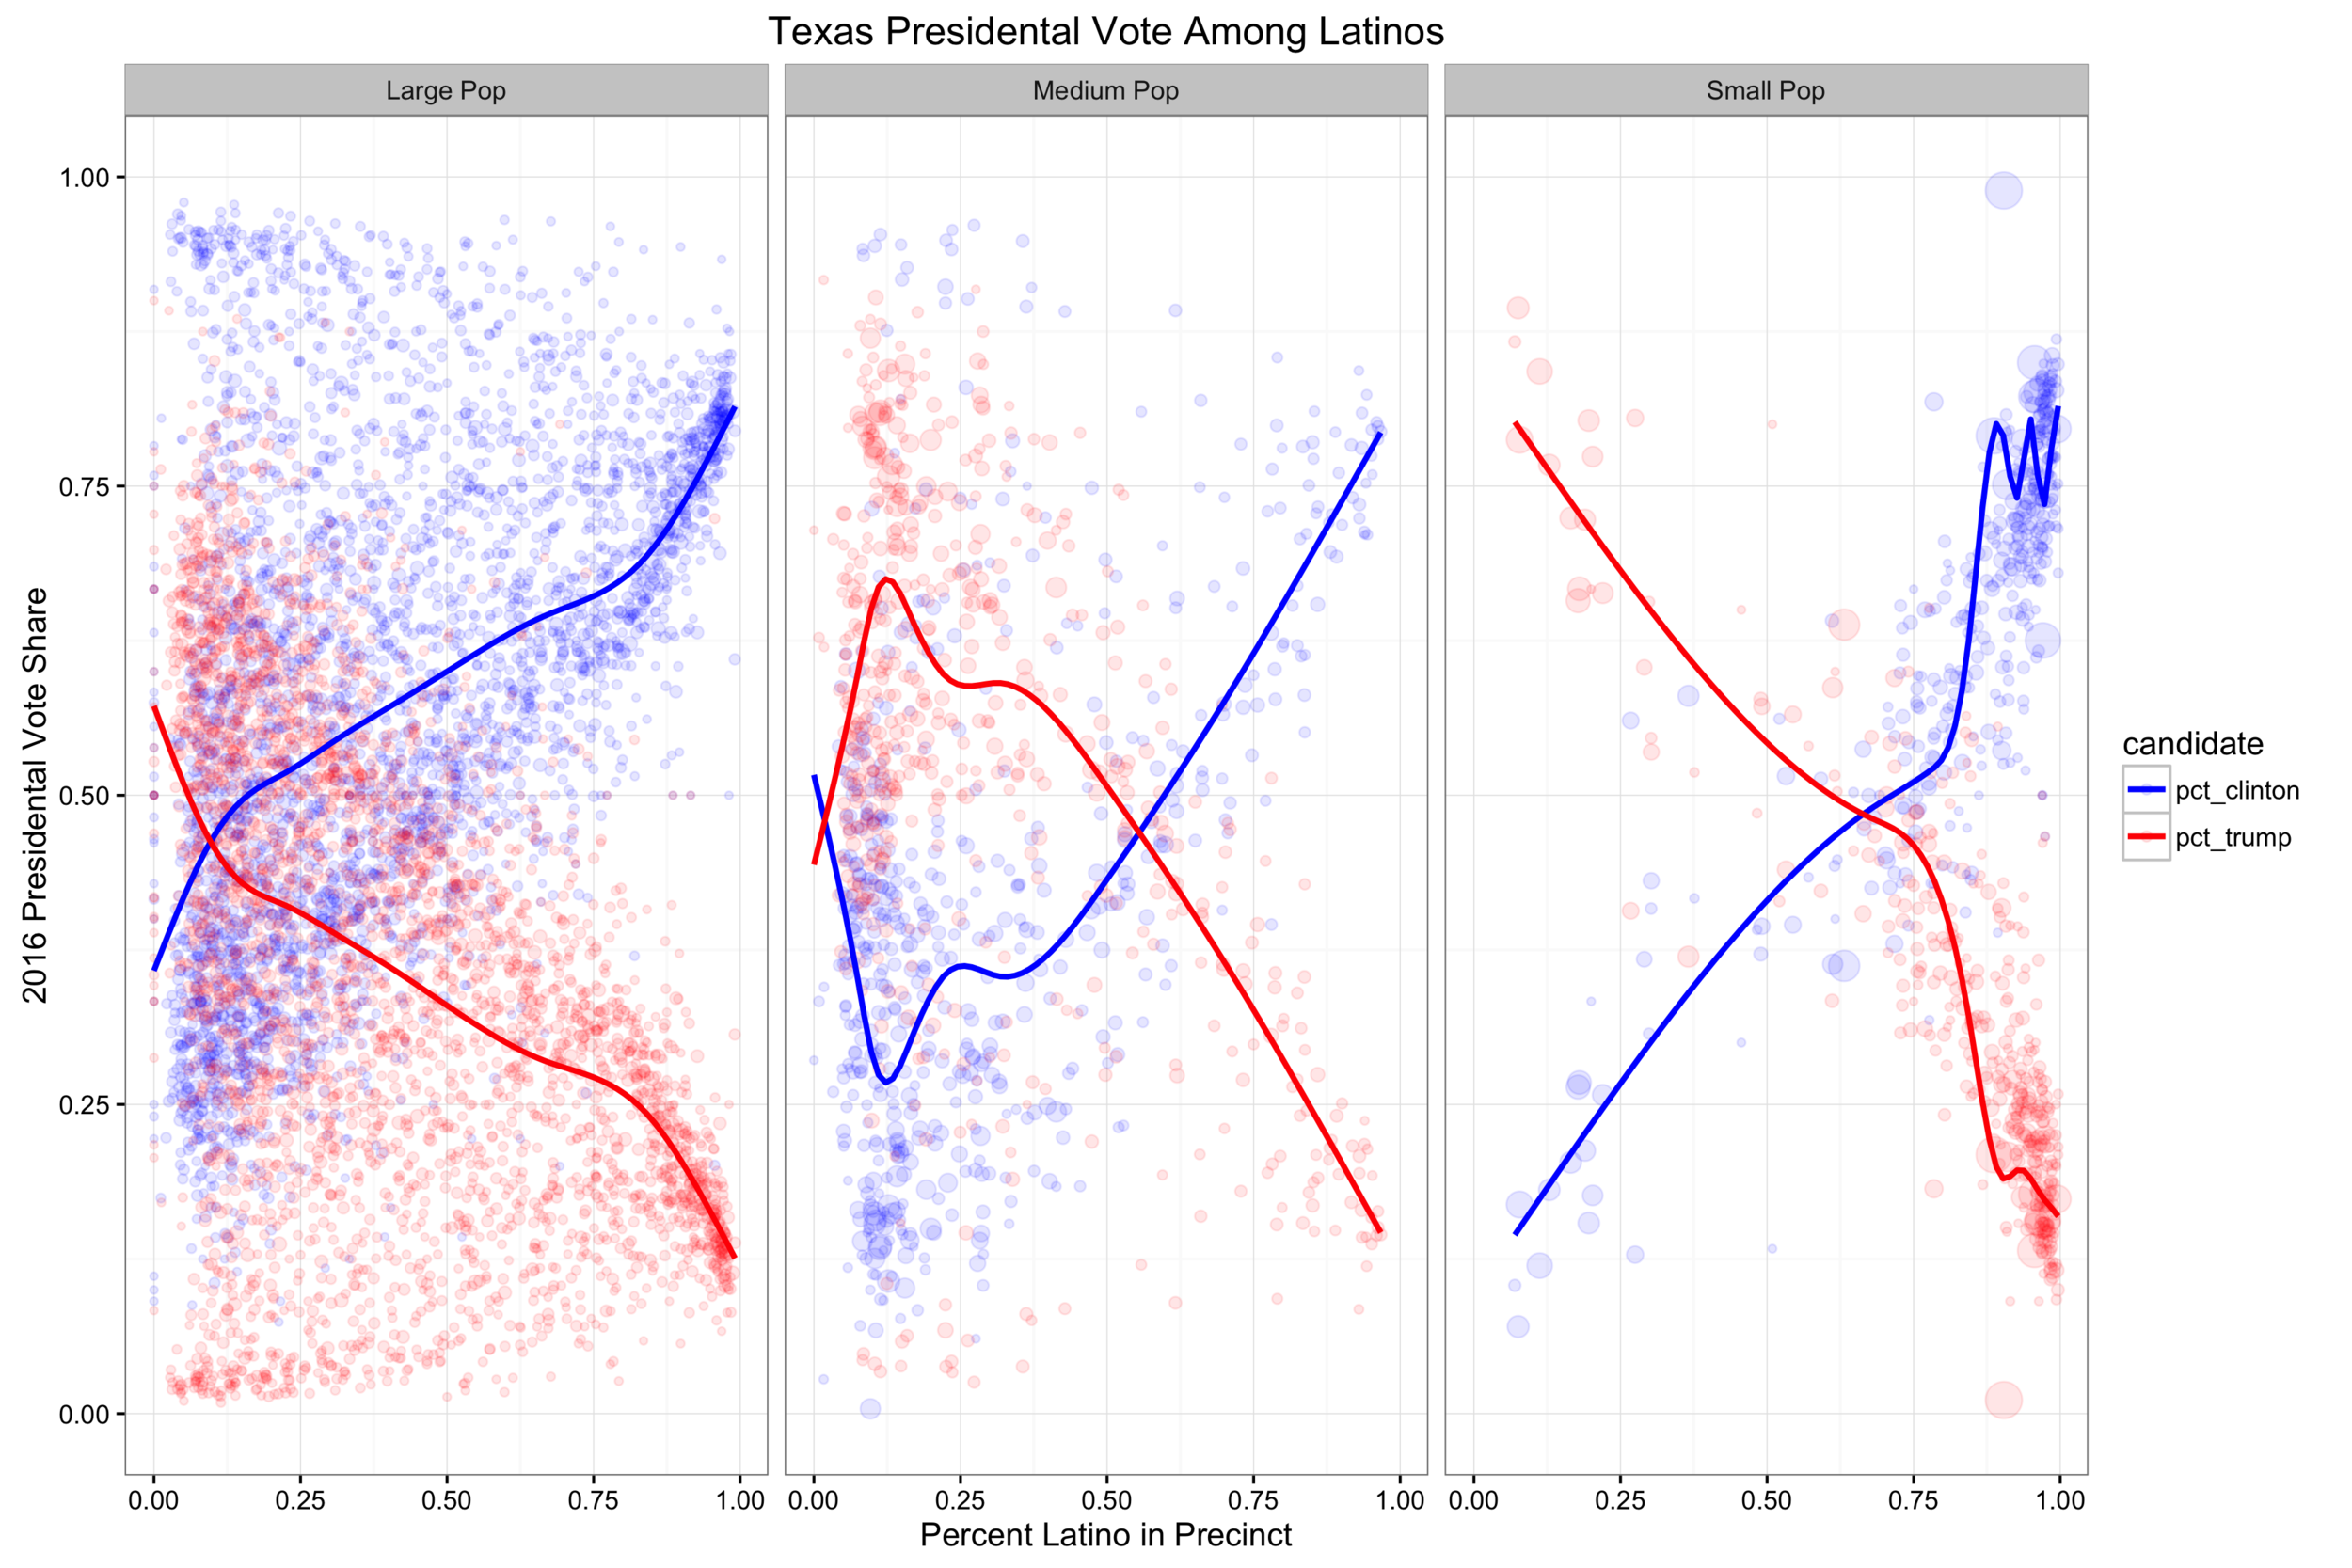 This plot shows the precinct level vote share across three county types. Smaller population counties, medium population counties are larger population counties. The lines are a weighted loess regression that estimates the vote share for each candidate (y-axis) across the percent Latino in the precinct (x-axis).